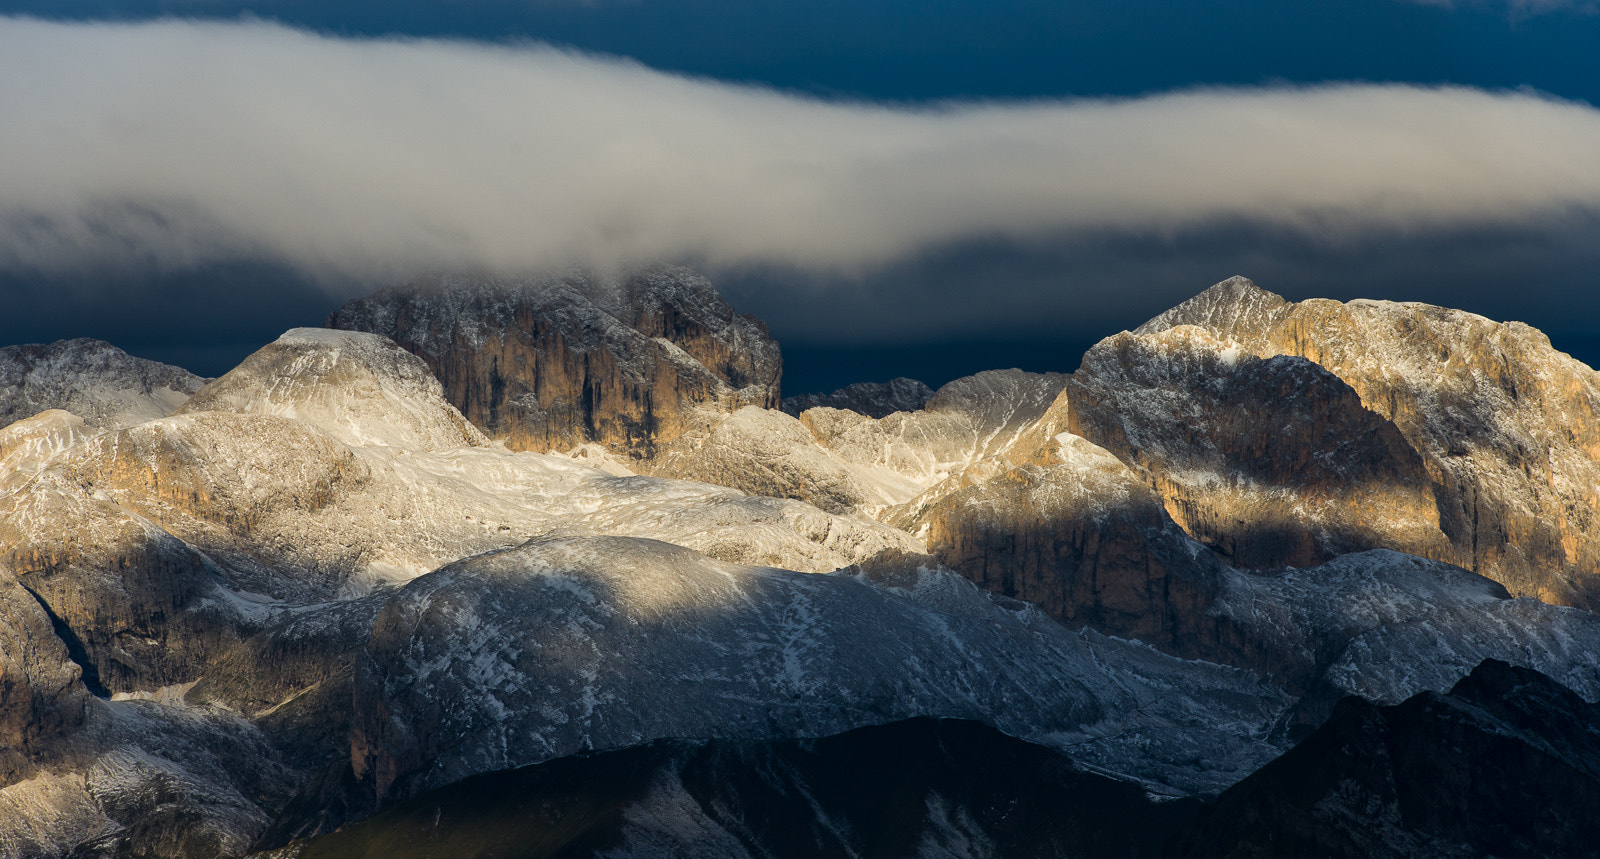 Photograph Clouds and mountains in the Dolomites by Hans Kruse on 500px